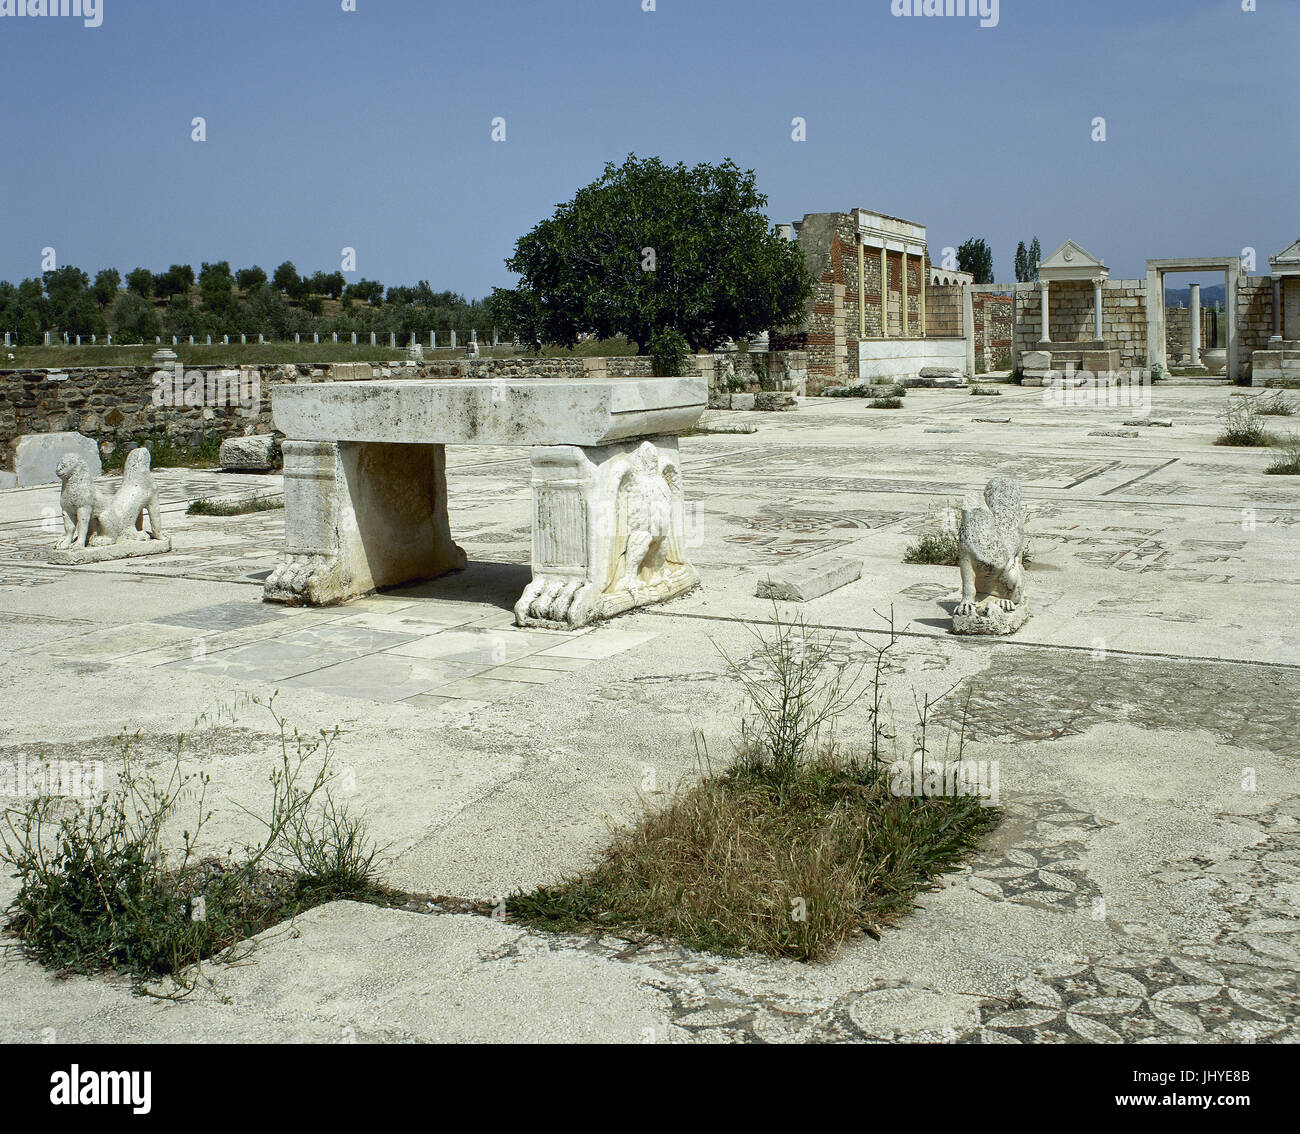 Turkis. Sardis. Ancient city. Sardis synagogue. Later Roman empire. Anatolia. - Stock Image